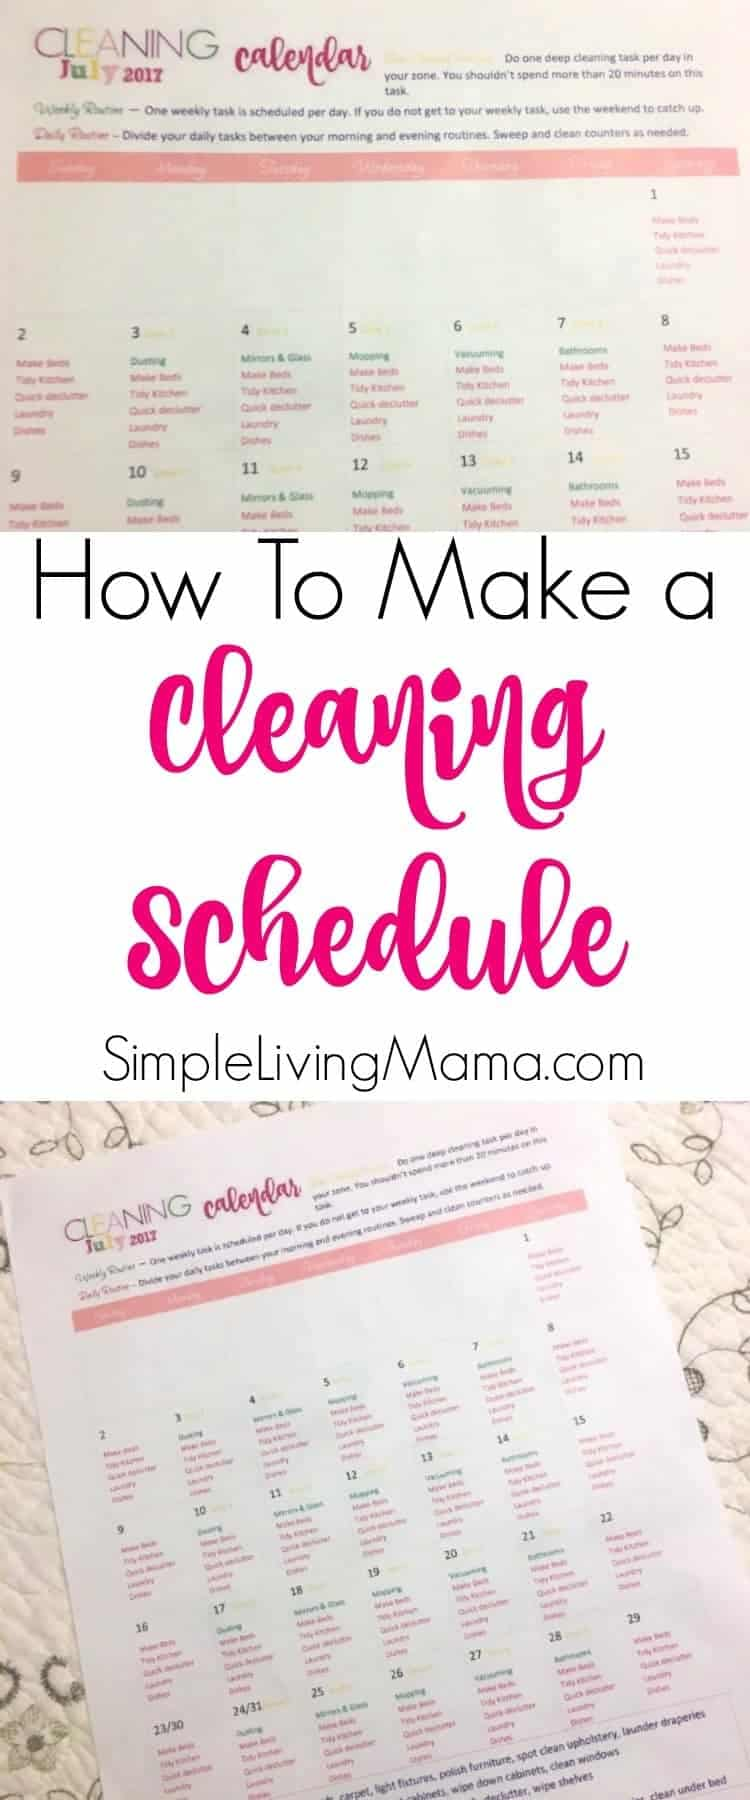 How to make a cleaning schedule even when you have little kids.